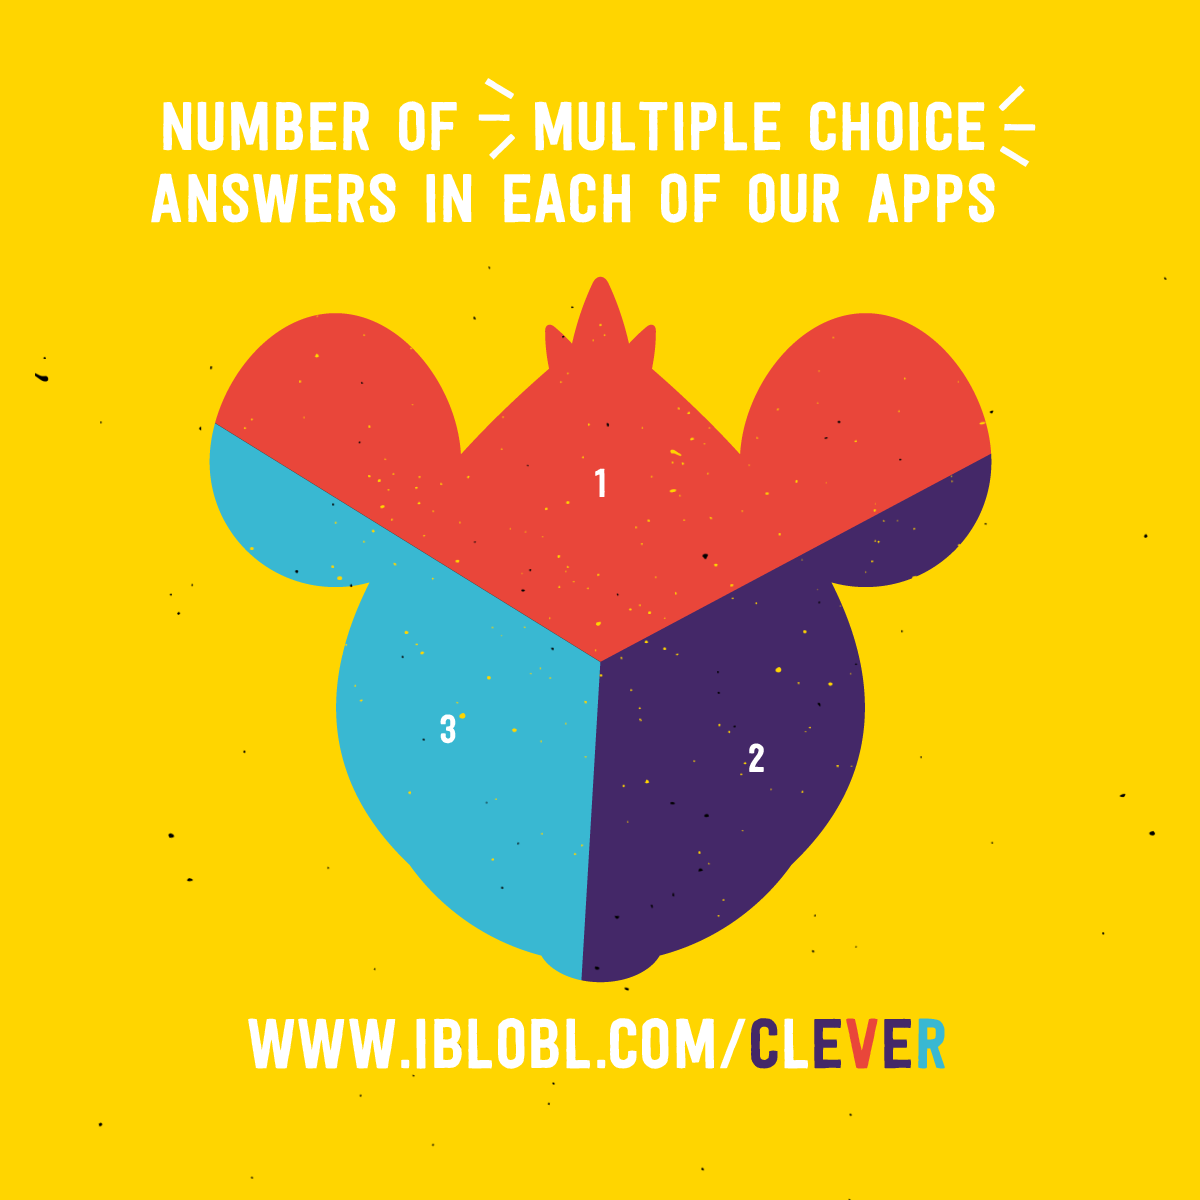 Number of multiple questions Ibbleobble apps